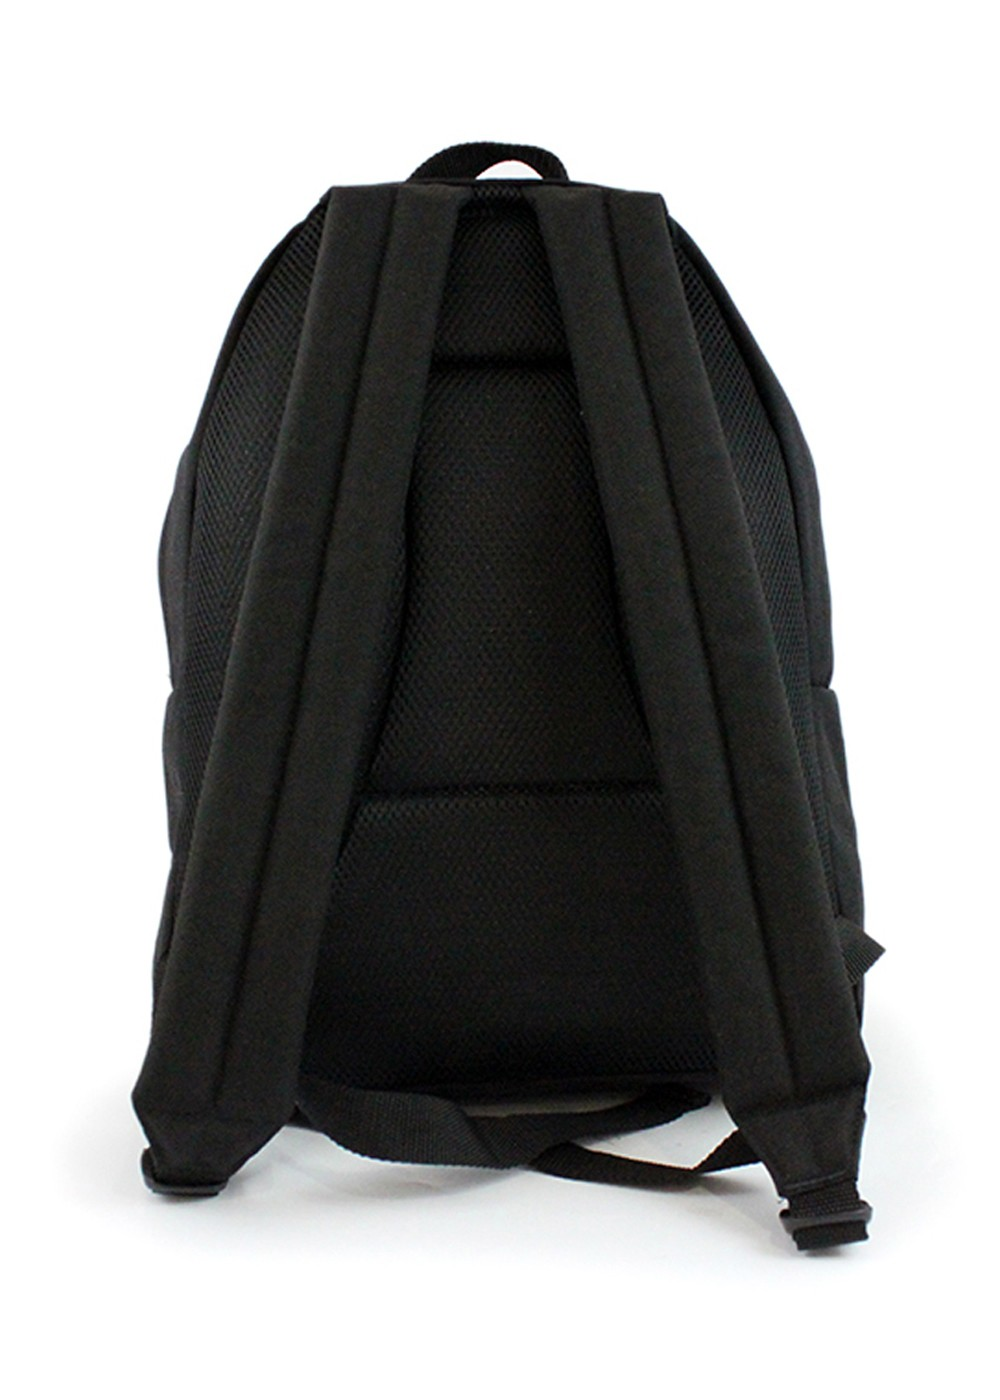 LINTON fabric Big Apple Backpack|ピンク|バックパック・リュック|Manhattan Portage